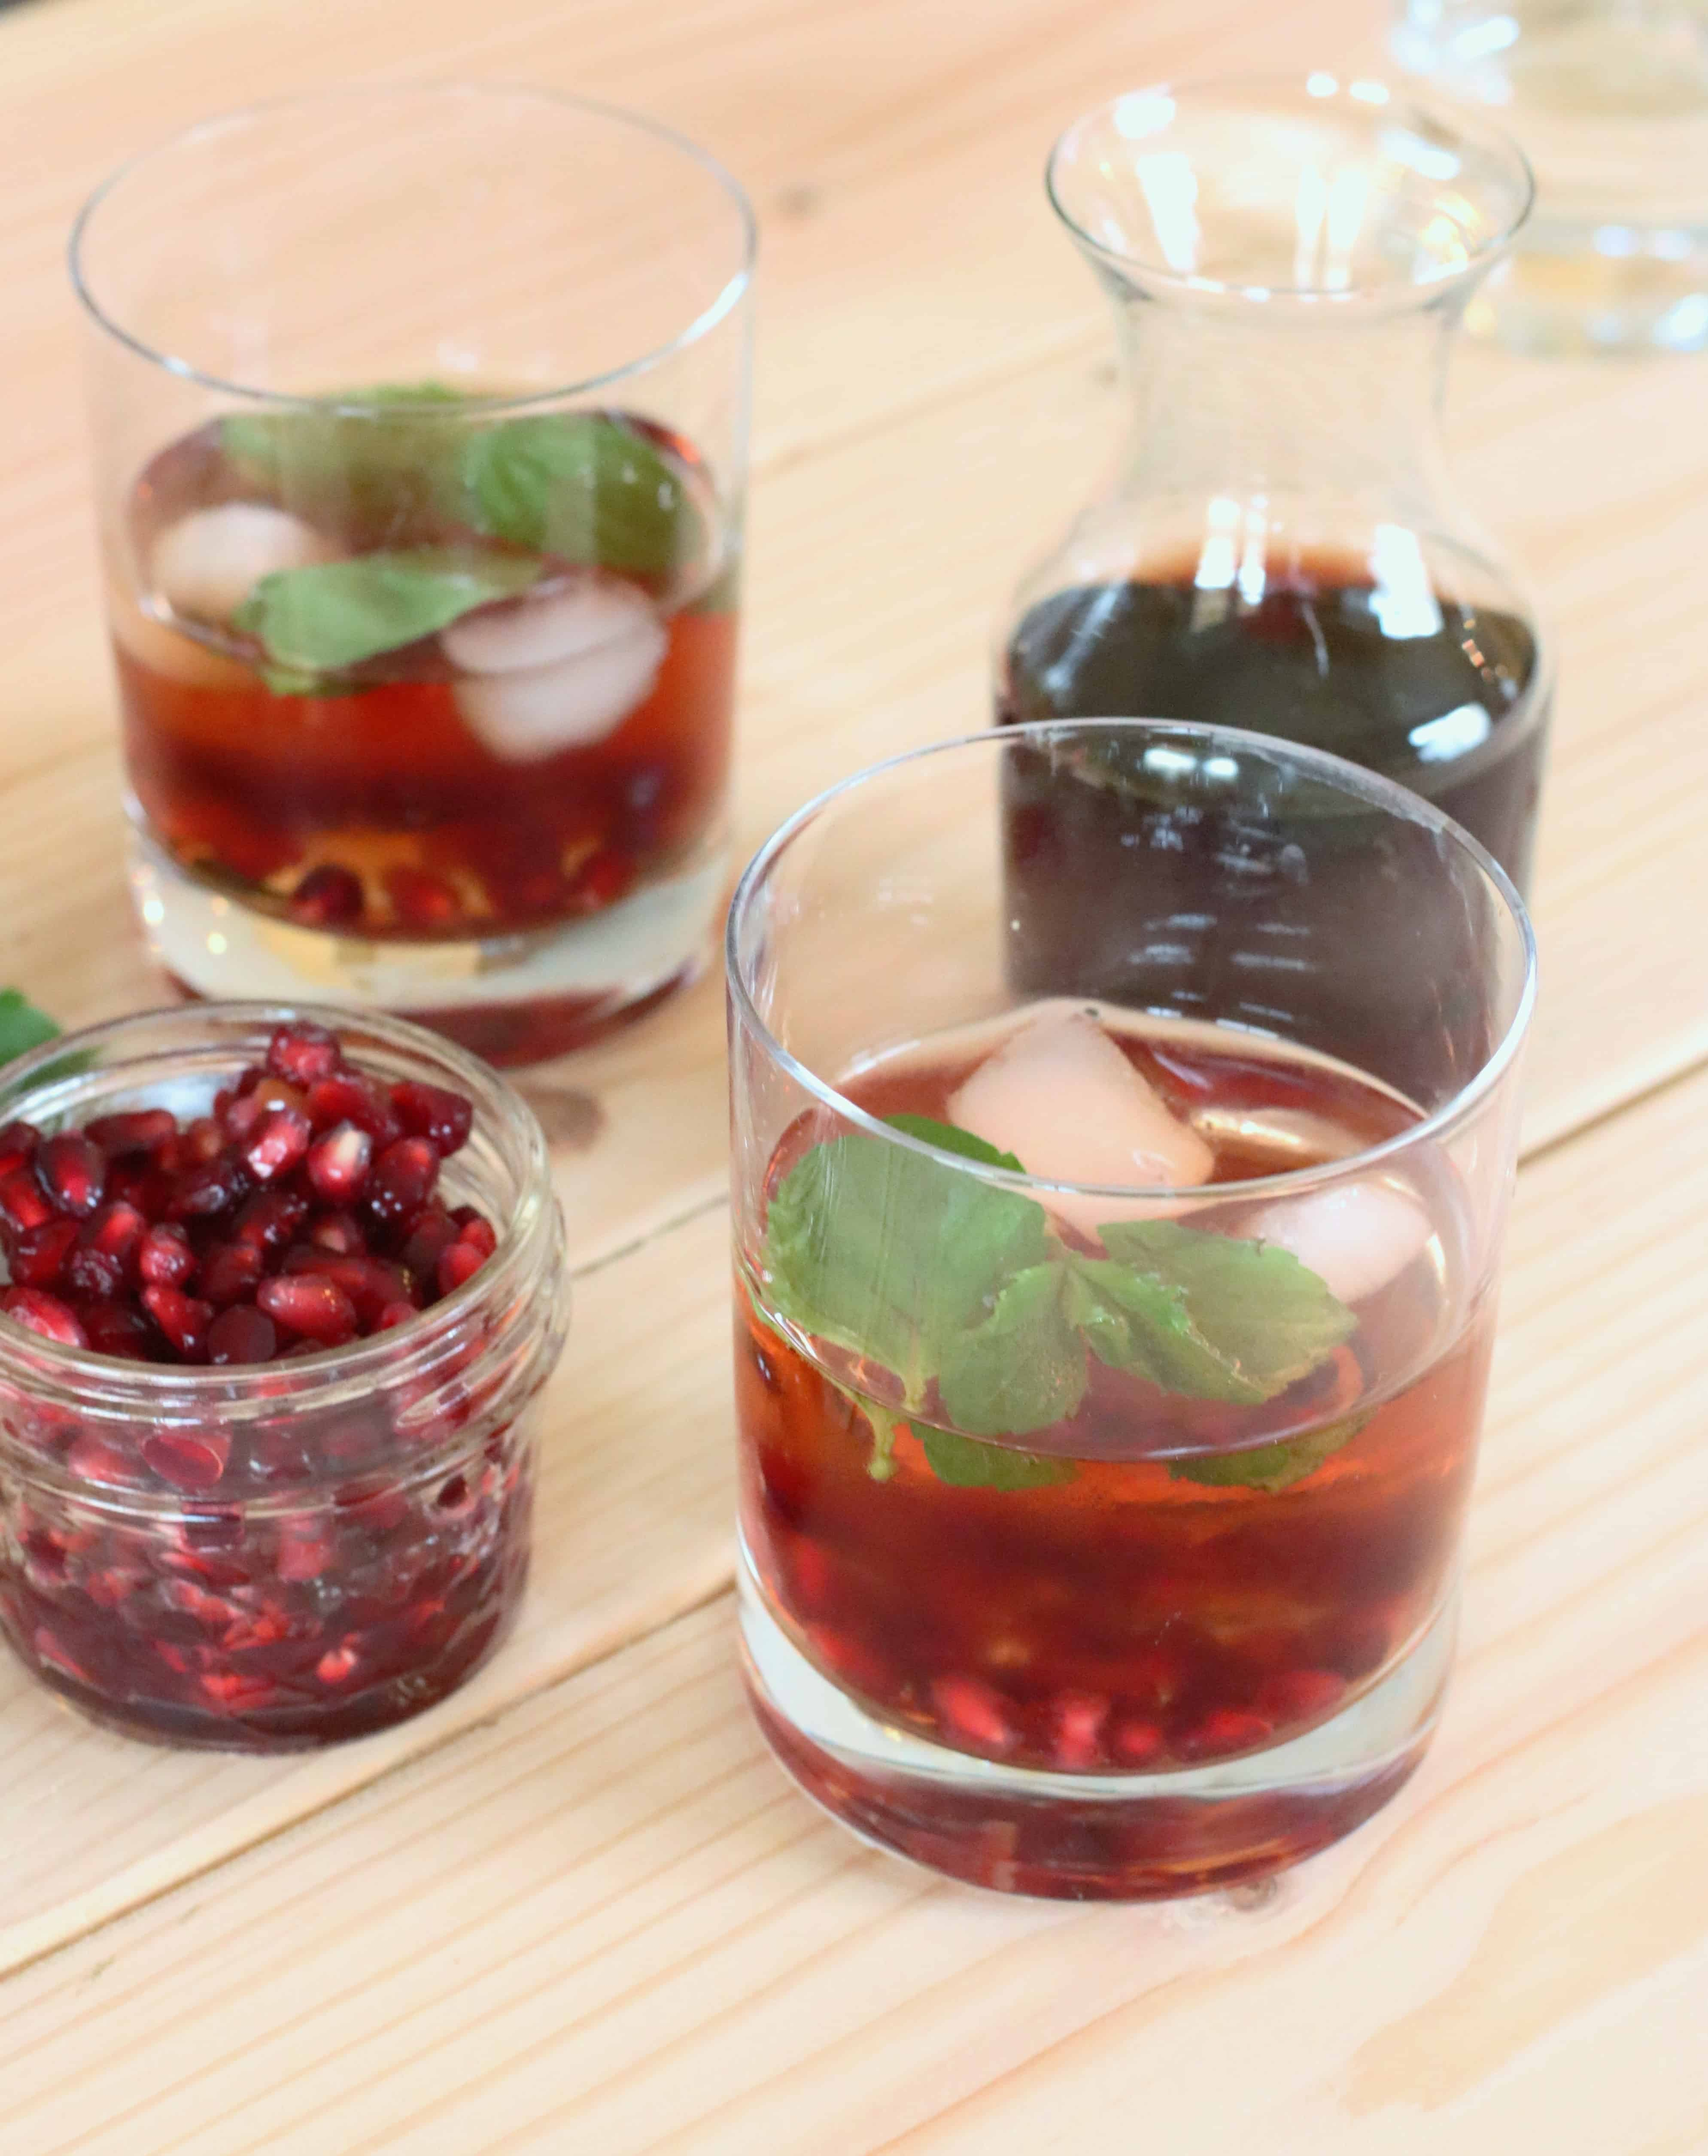 • In a cocktail shaker (or a mason jar with a lid), mix vodka, pomegranate juice, and club soda with ice. In the bottom of a festive glass, muddle 3 mint leaves with 1 teaspoon pomegranate arils. Strain Pomsettia mixture into the glass and garnish with a mint leaf and pomegranate arils, if desired.